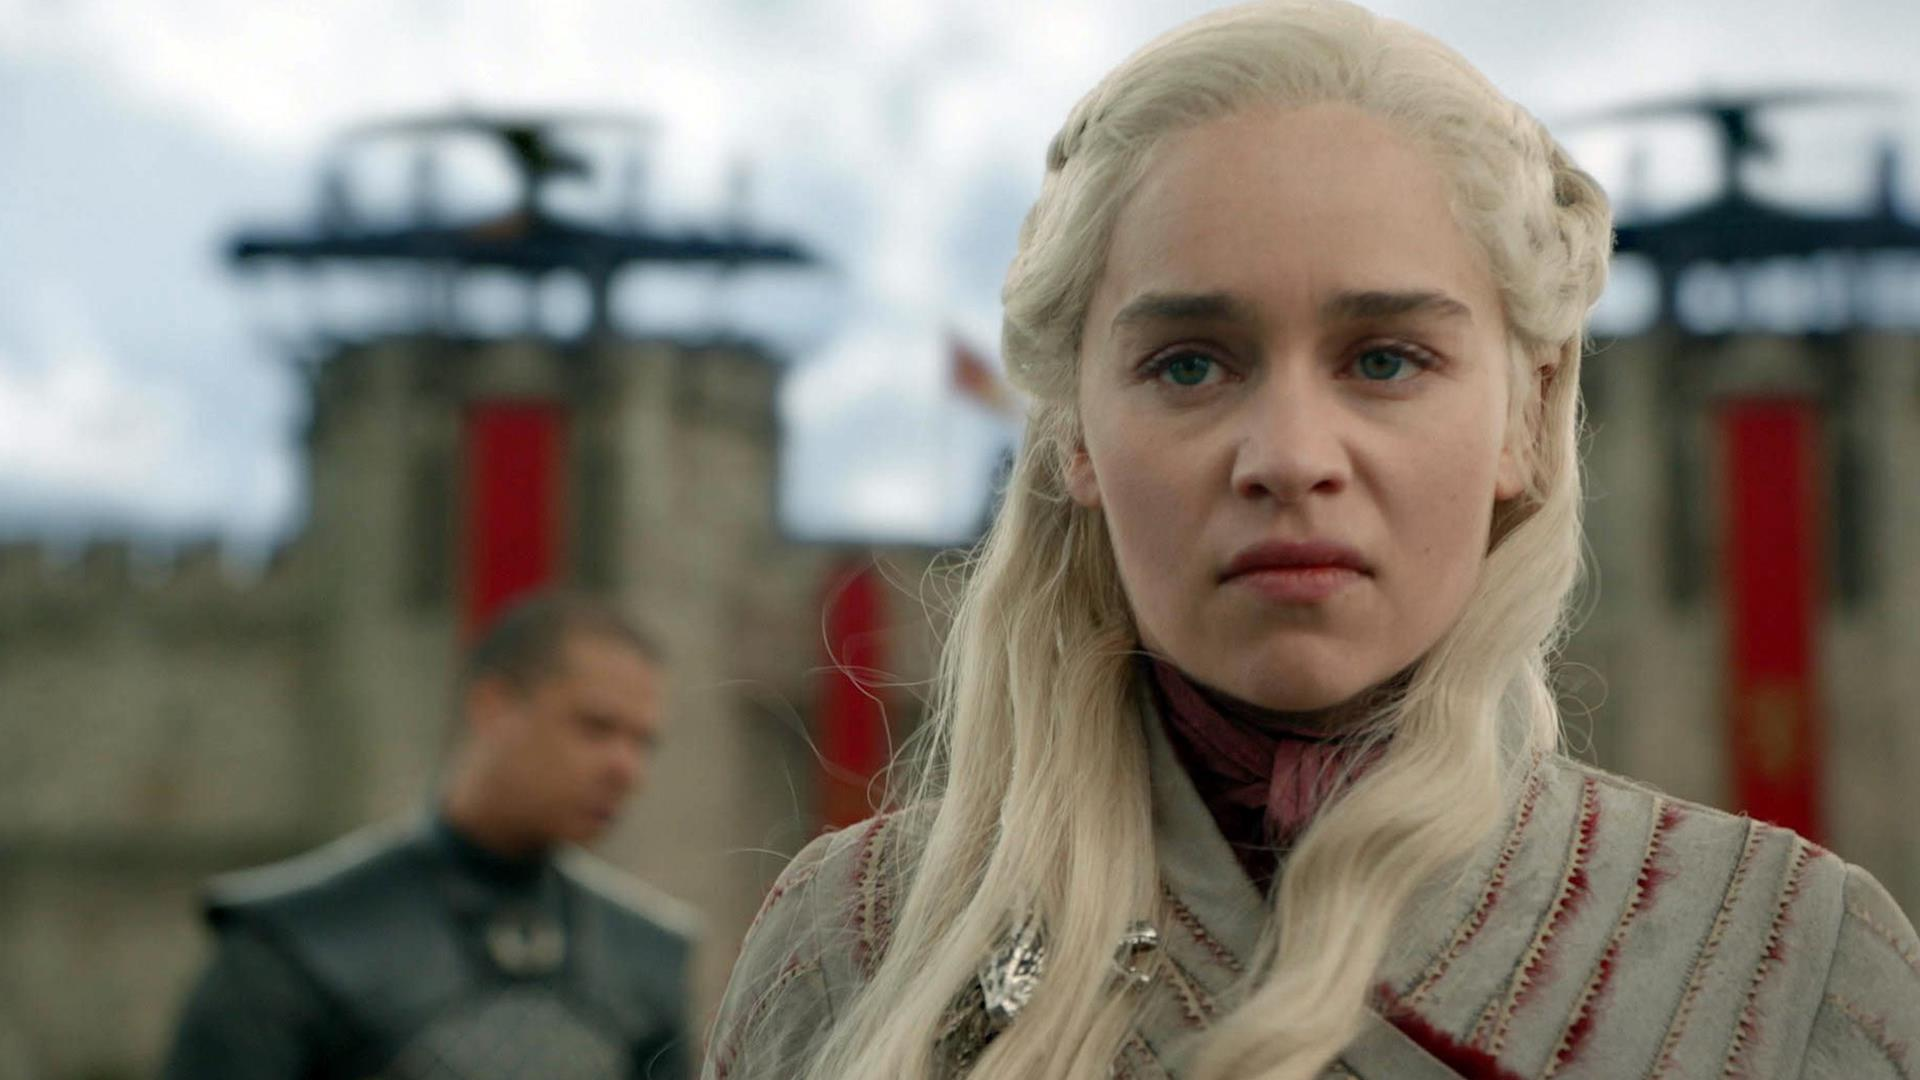 Game of Thrones finale: Where does the fantasy genre go from here?